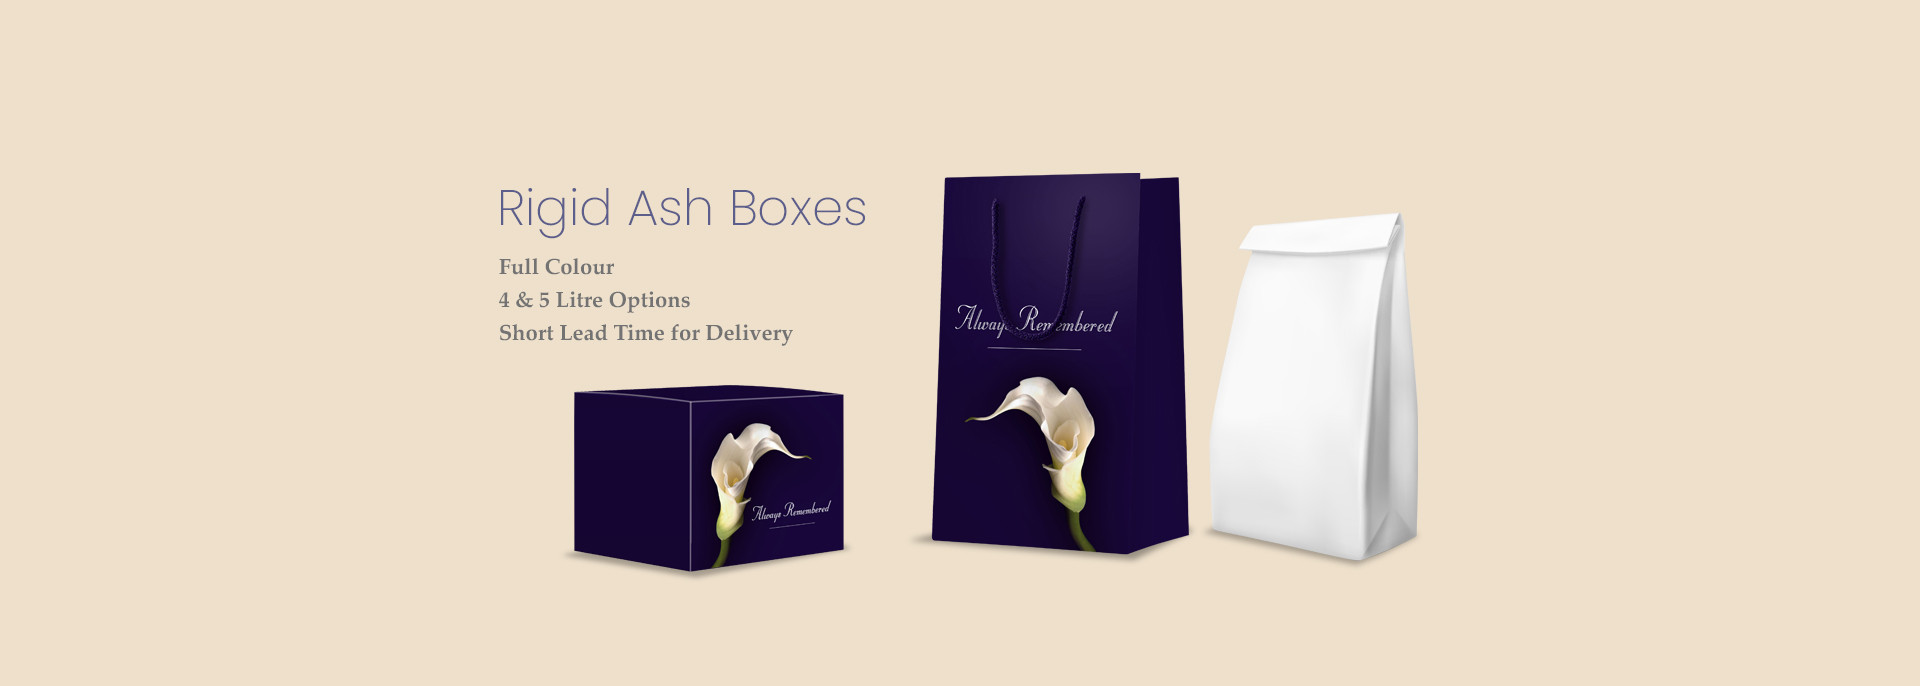 Branded Rigid ash boxes for Funeral Professionals